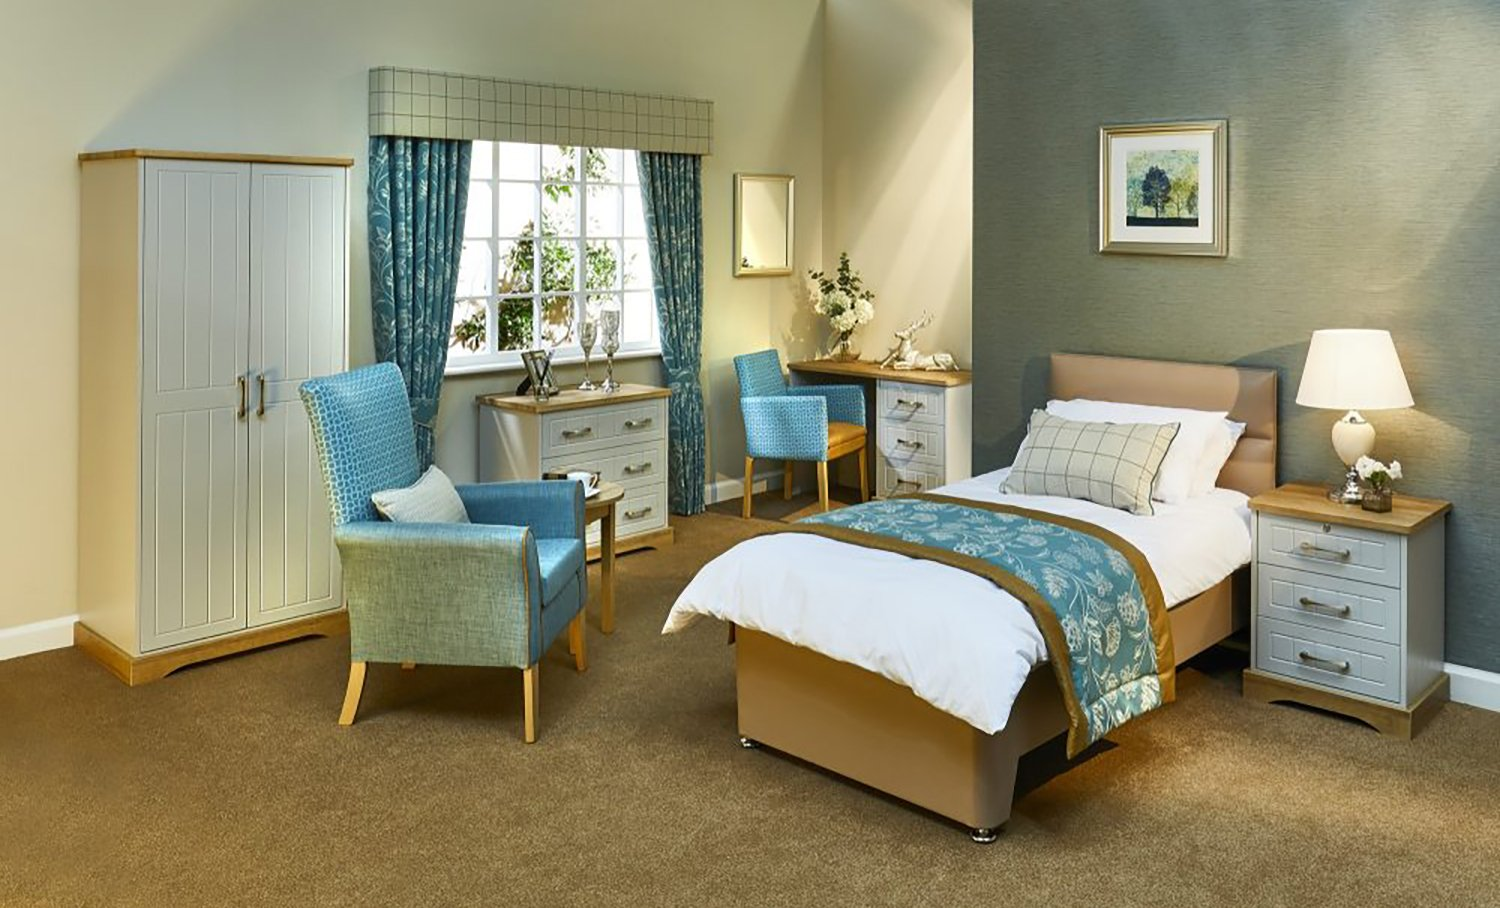 Furniture for care homes